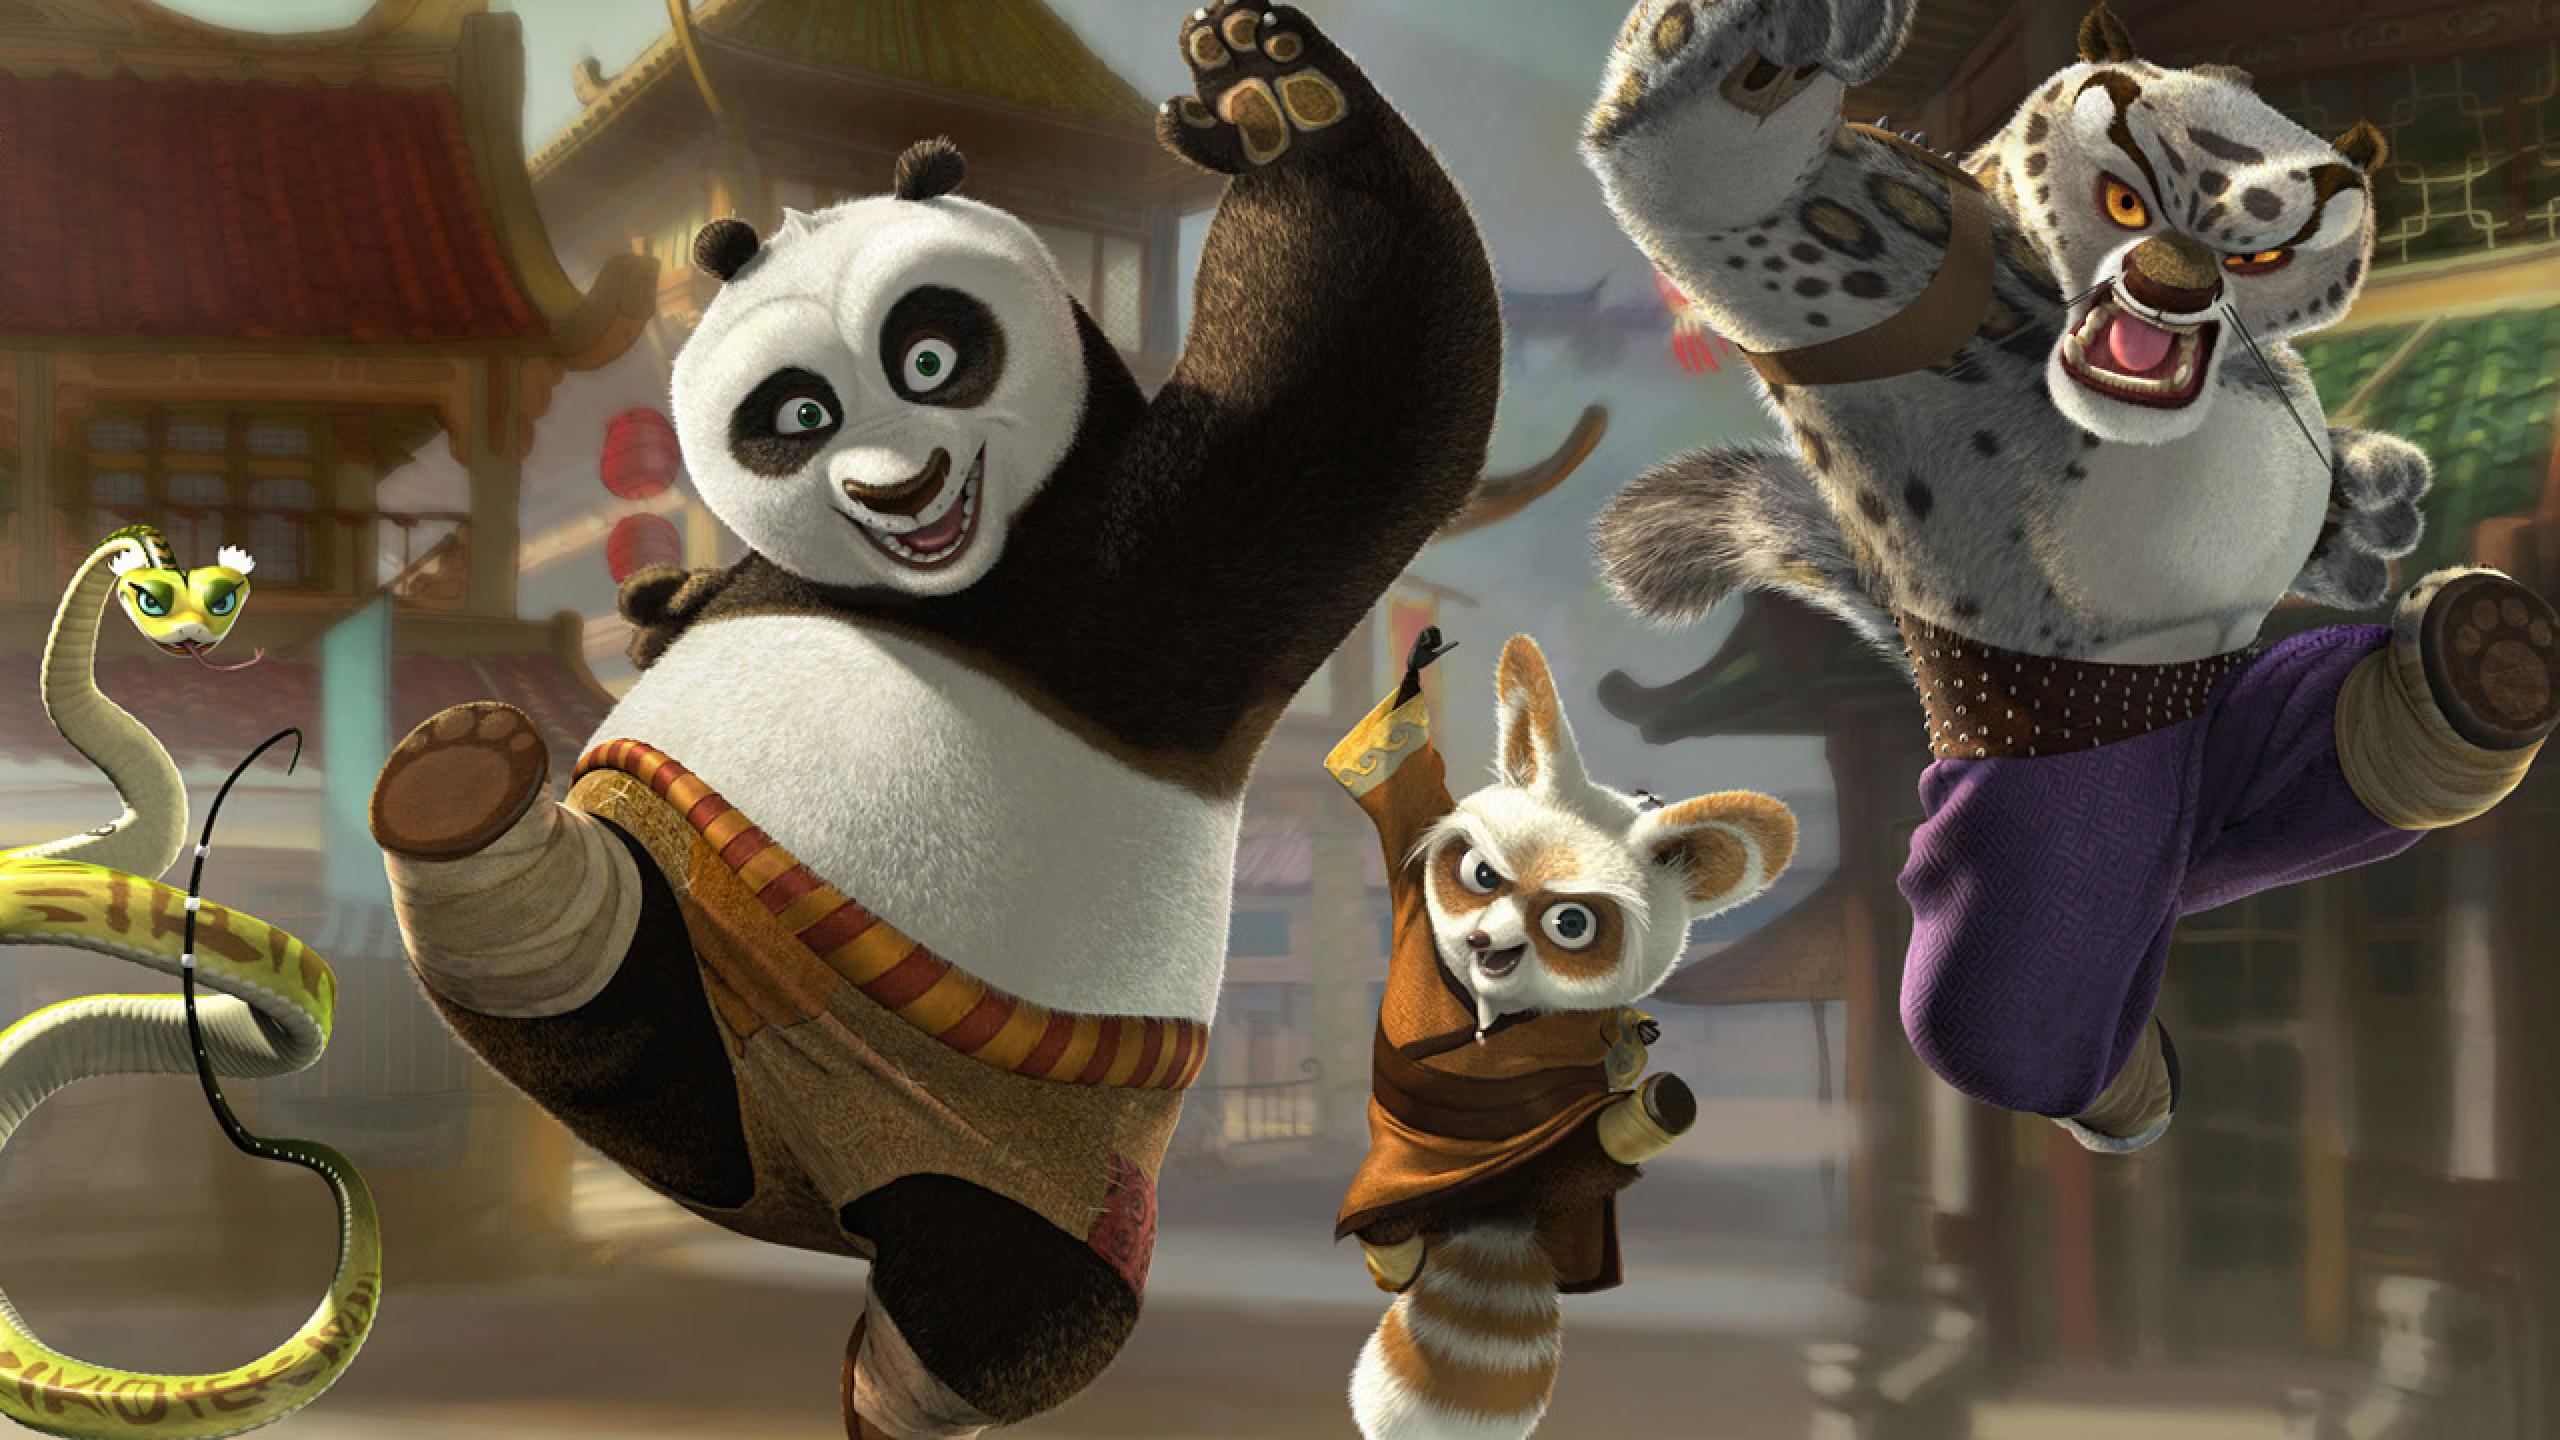 kung_fu_panda_film_movies_2560x1440_hd-wallpaper-8918